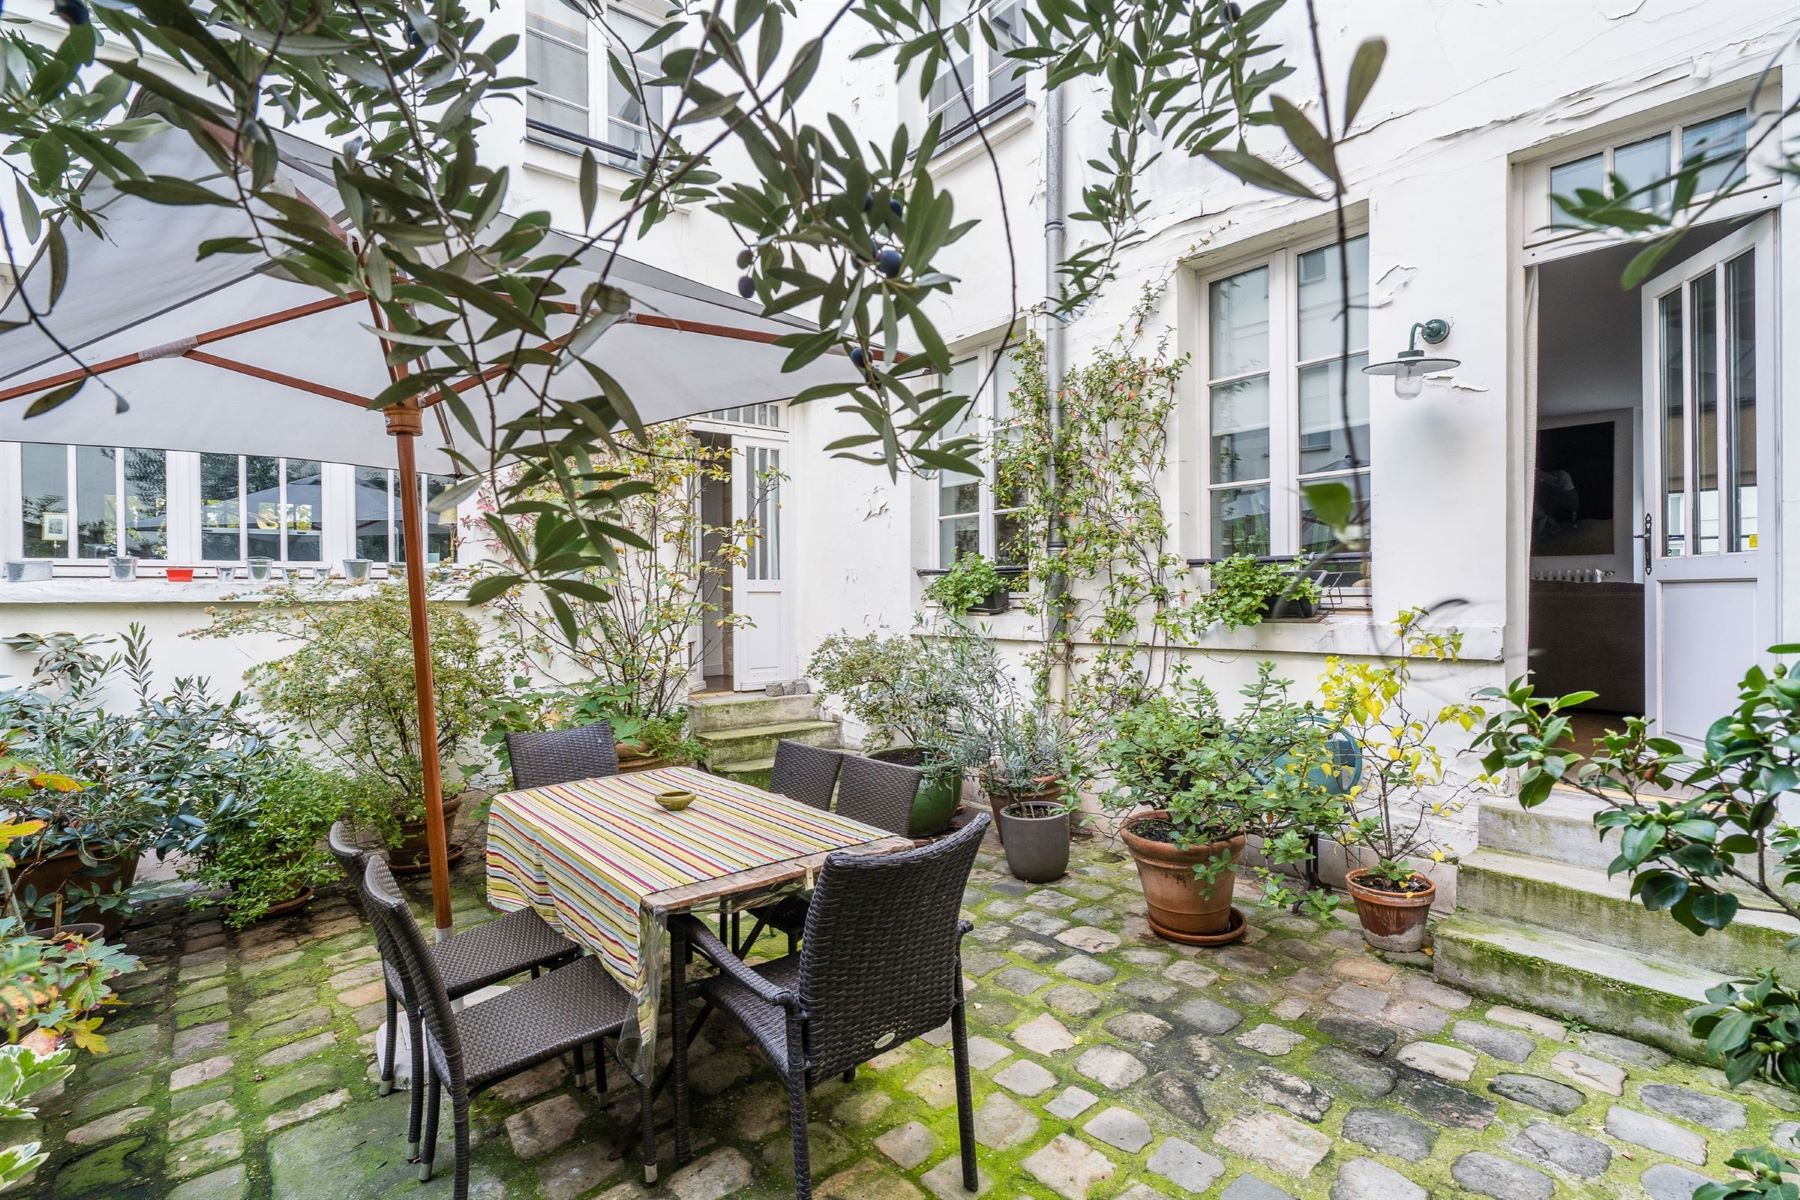 Duplex Homes for Sale at Buttes Chaumont : A family duplex apartment in an absolute peaceful environment Paris, Ile-De-France 75010 France